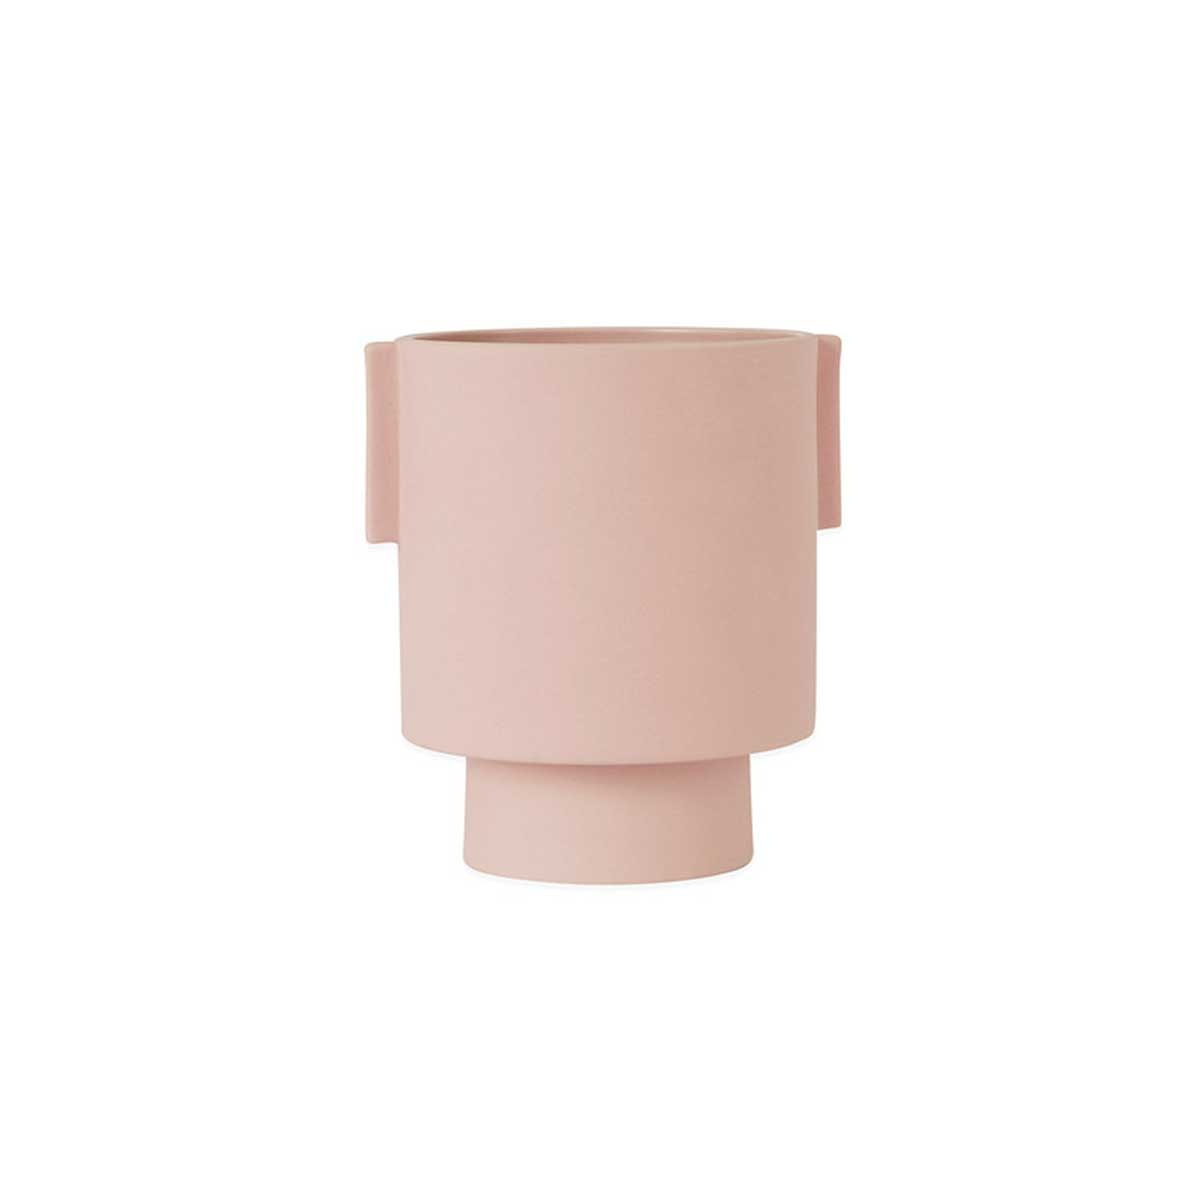 Inka Kana Medium Pot in Rose<br>by OYOY